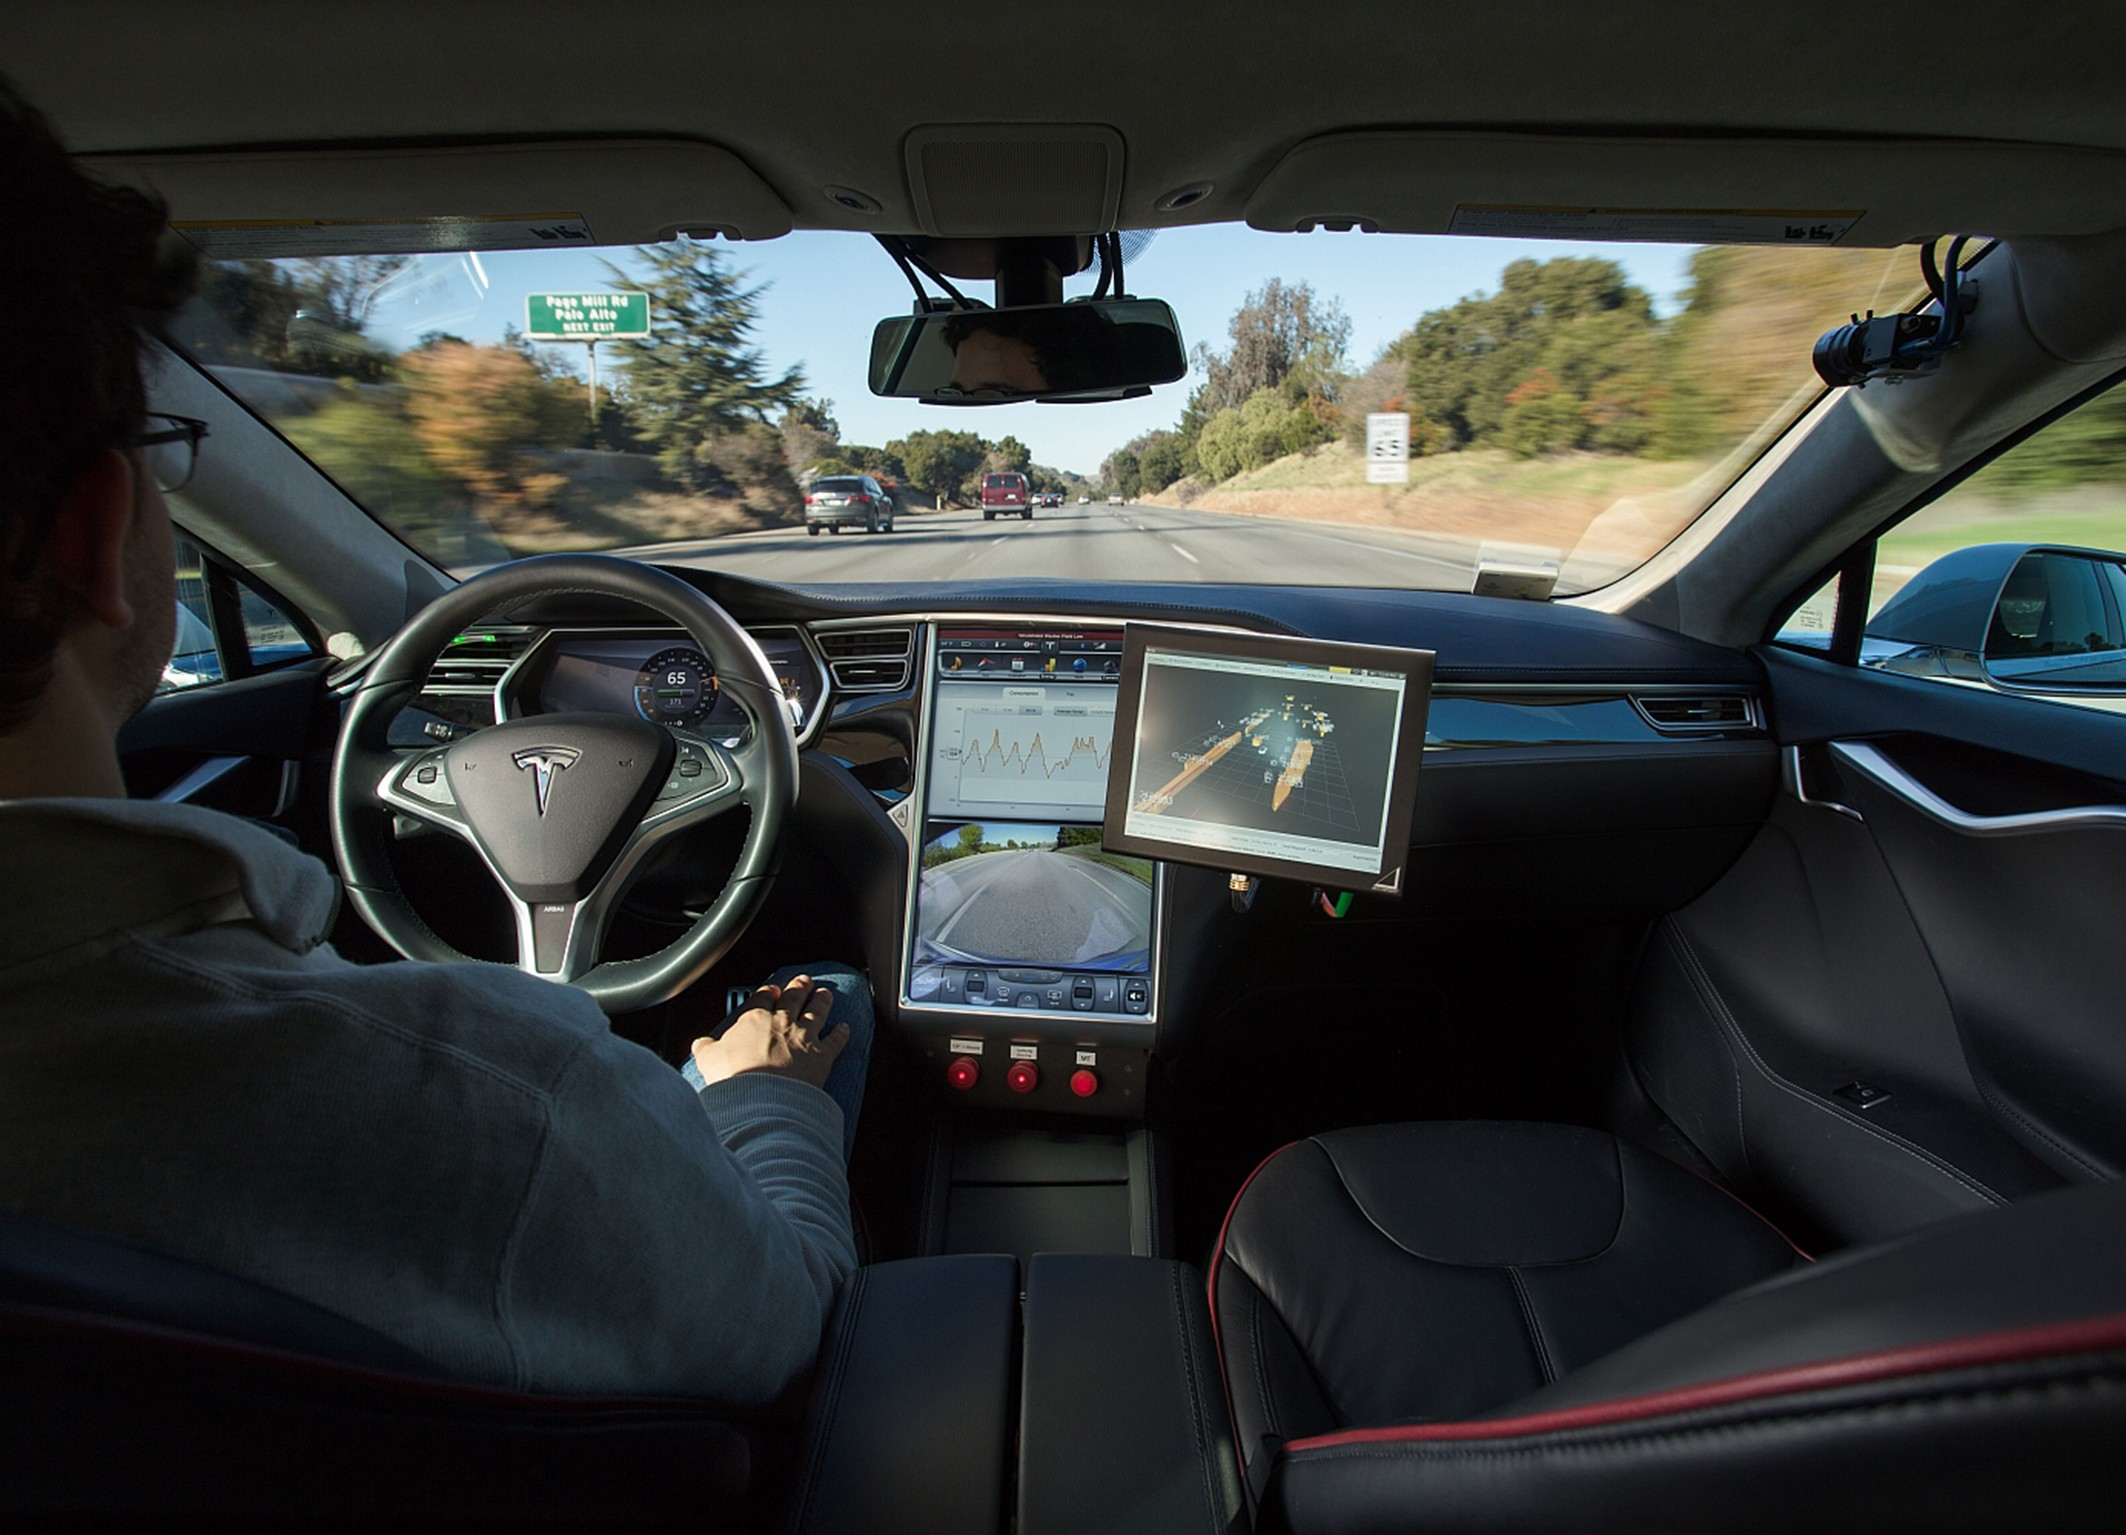 Bosch tests Tesla Model S on Japanese roads